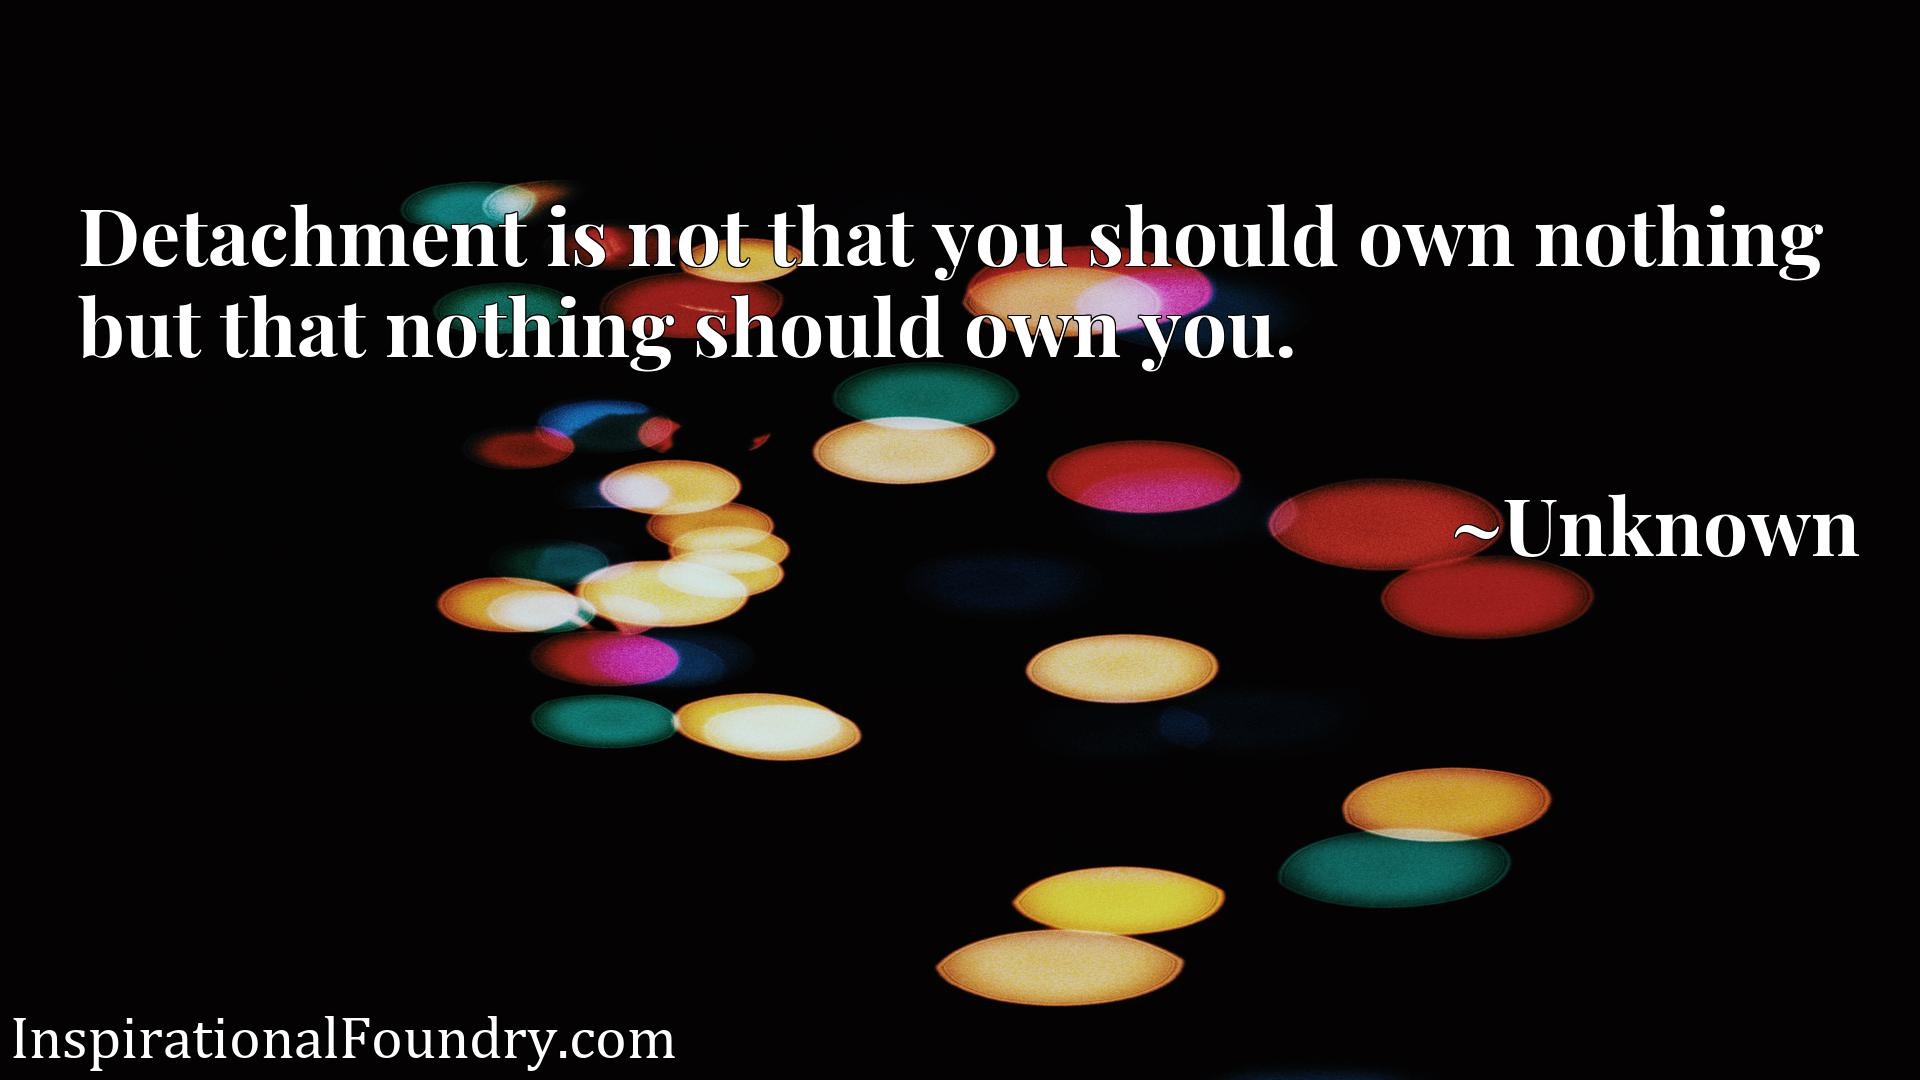 Detachment is not that you should own nothing but that nothing should own you.